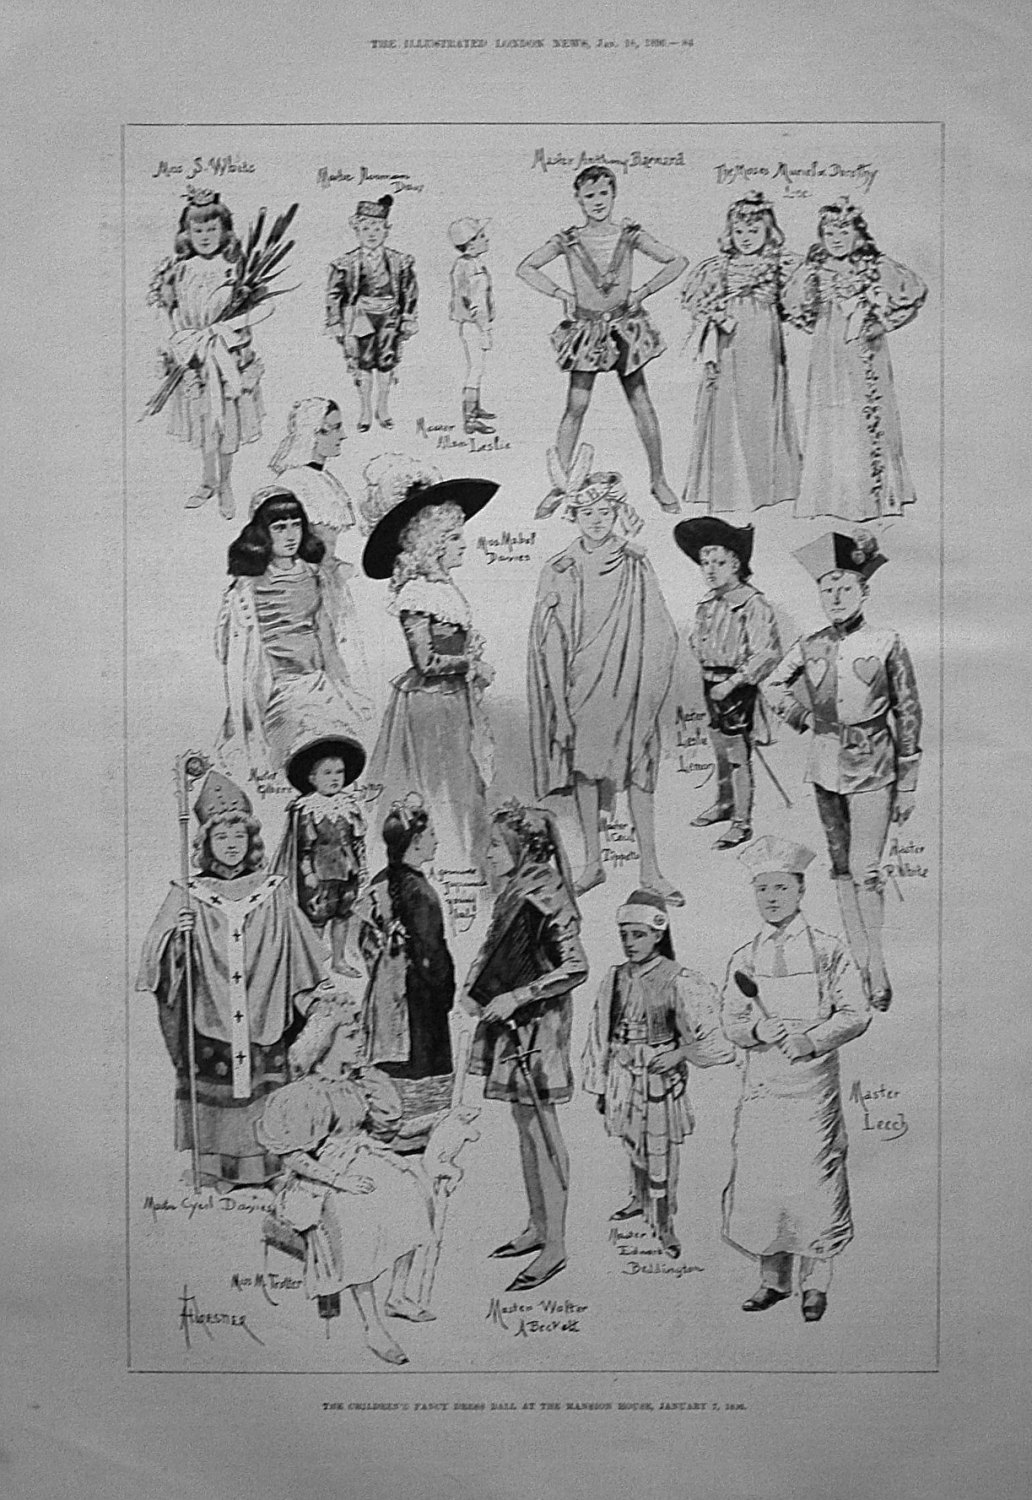 The Children's Fancy Dress Ball, at the Mansion House, January 7th, 1896.